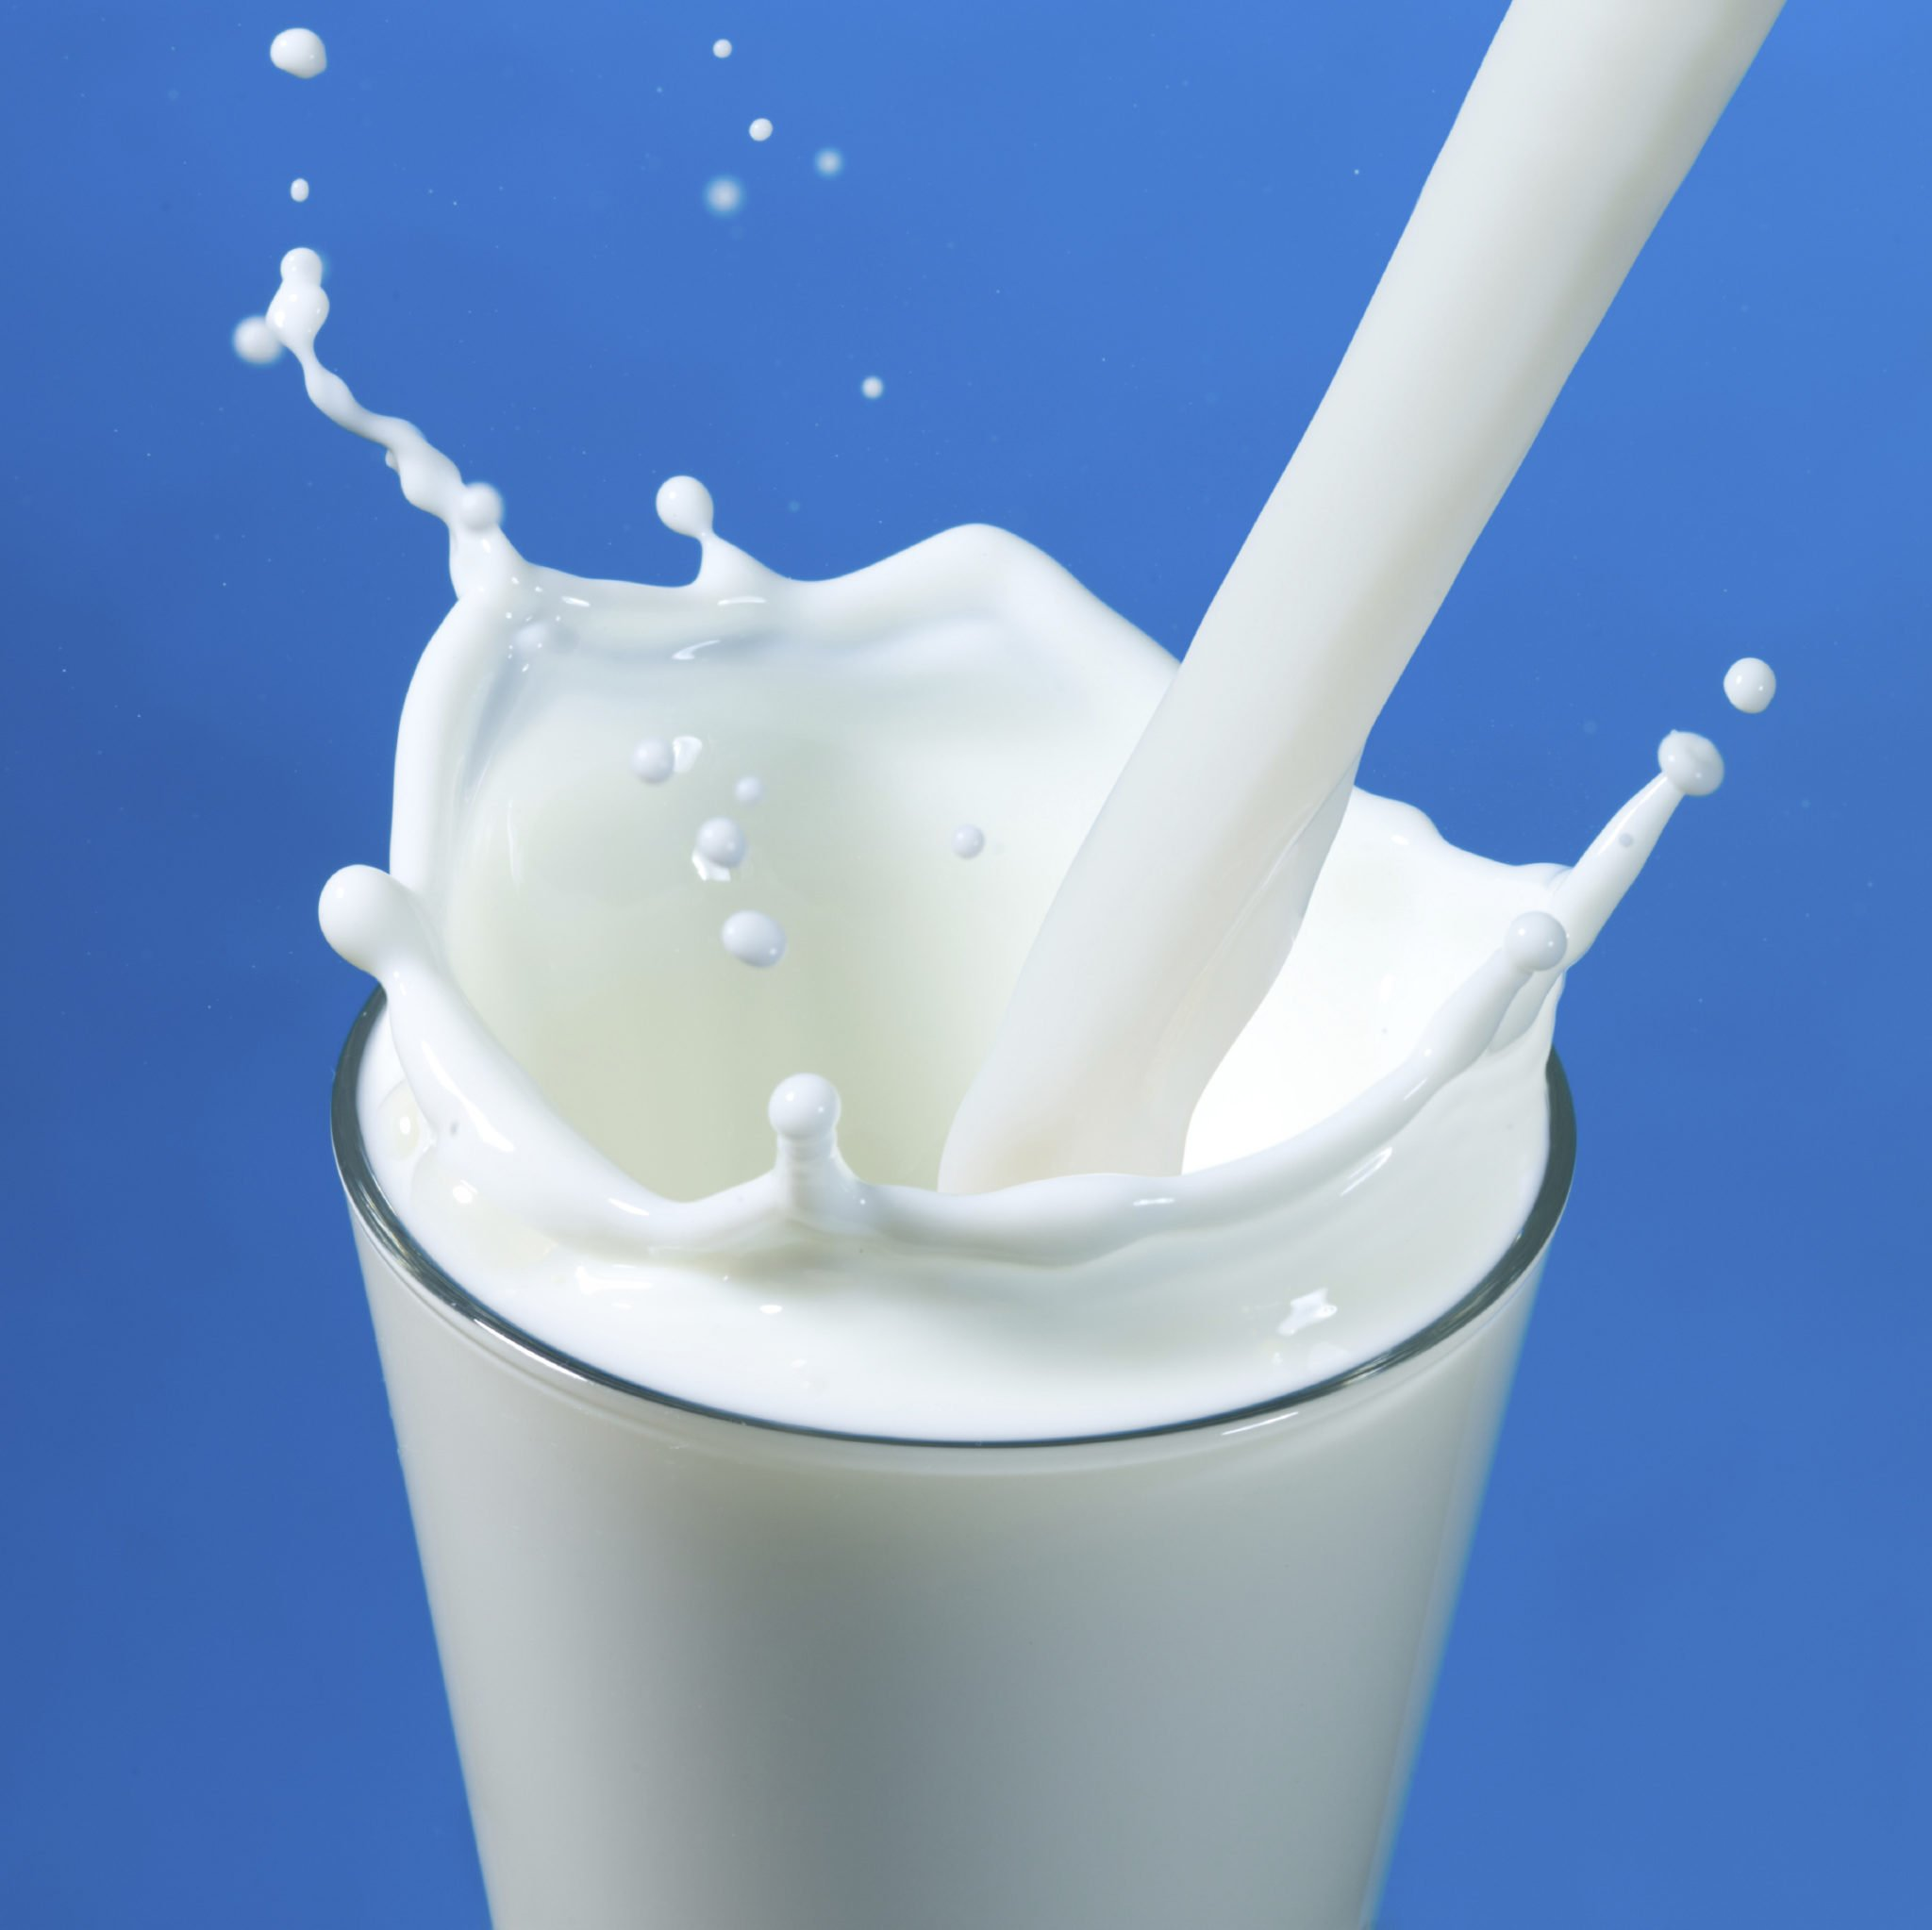 pouring milk in a glass isolated against white background